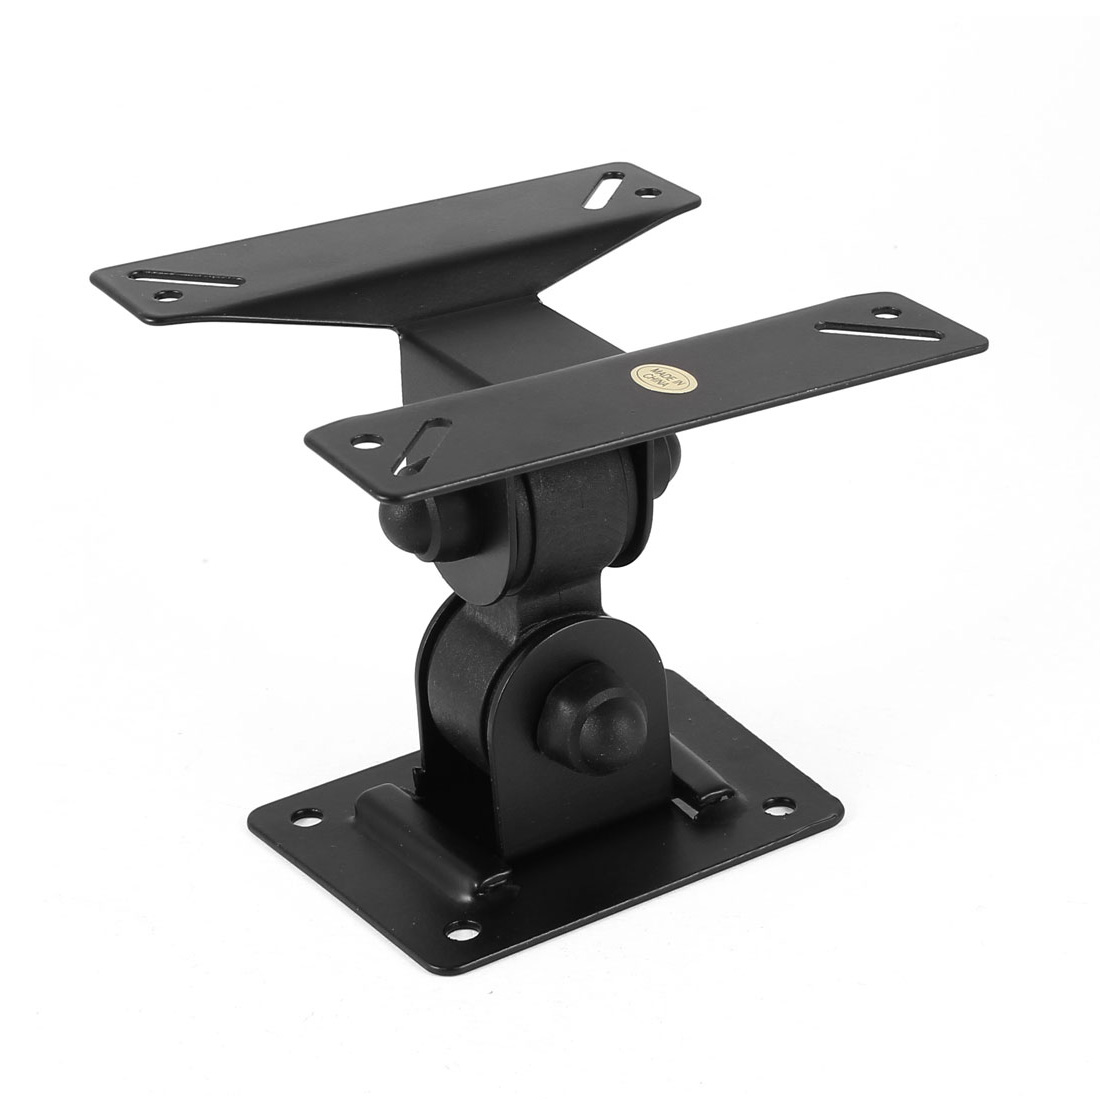 "Black Metal 180 Degree Rotation Wall Mount Stand Bracket for 14""-21"" LCD TVs"